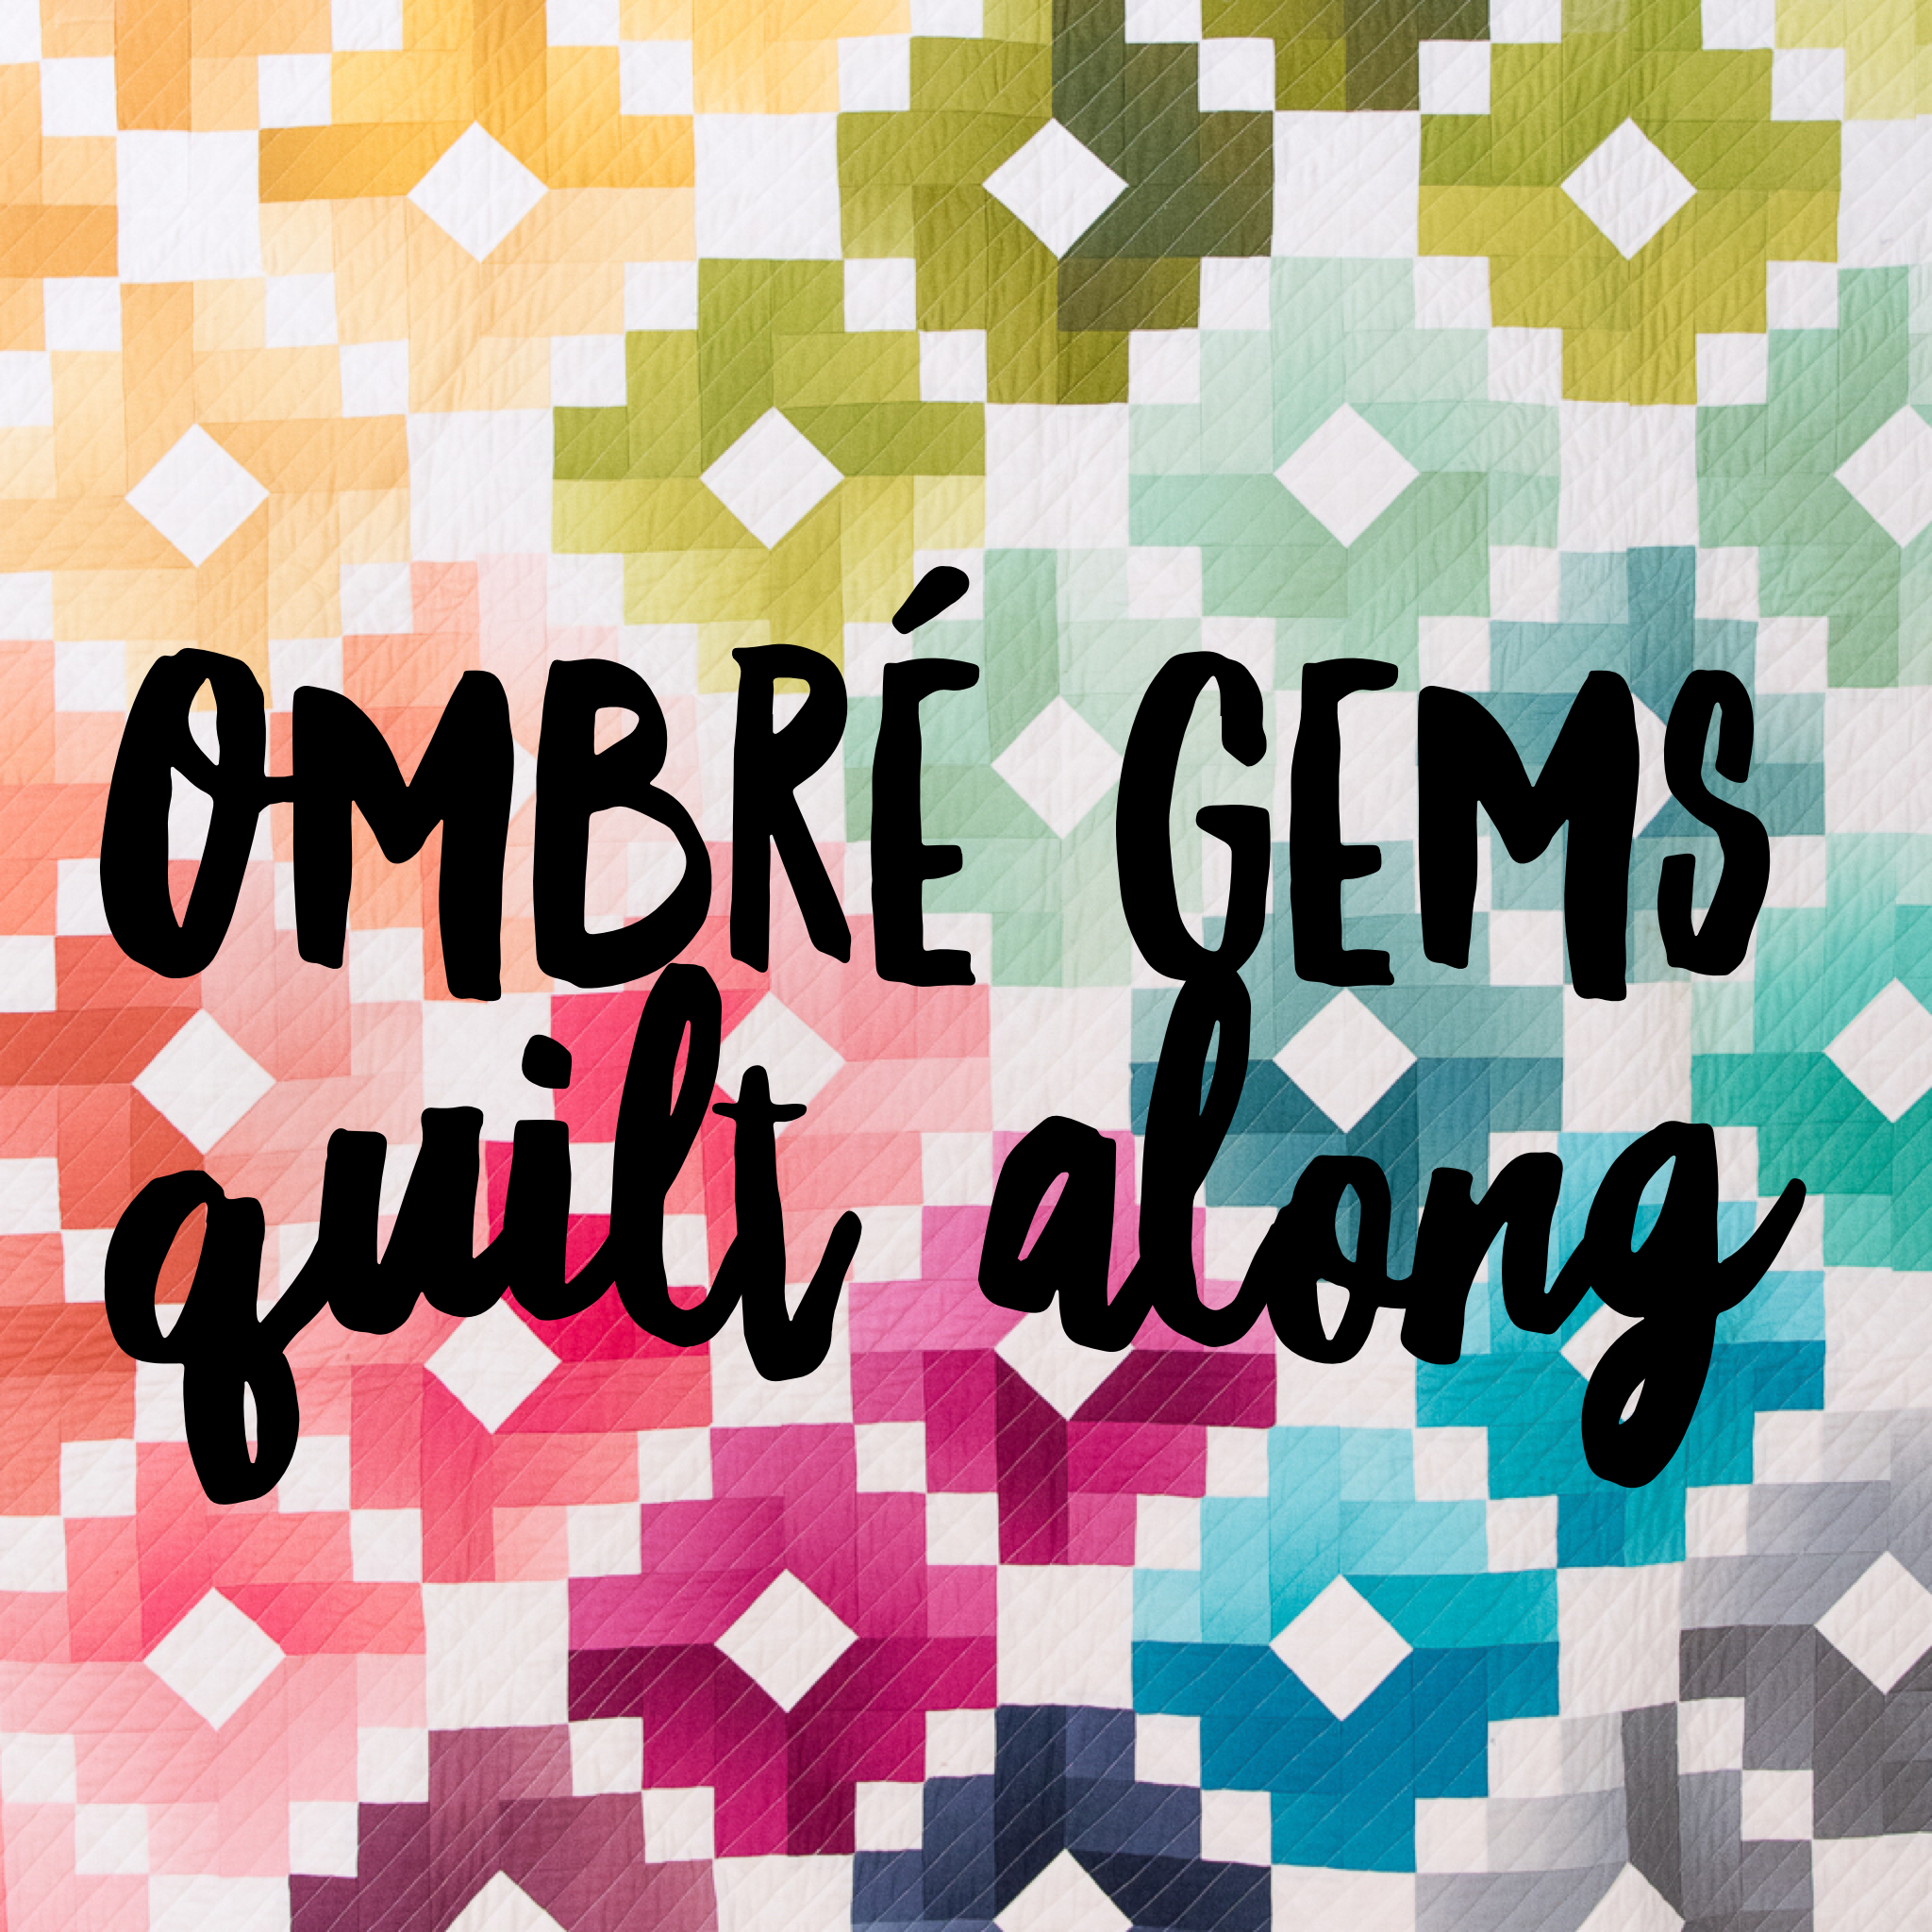 Ombre Gems Quilt Along - The official post | Ombre, Gems and Fabrics : ombre quilting fabric - Adamdwight.com